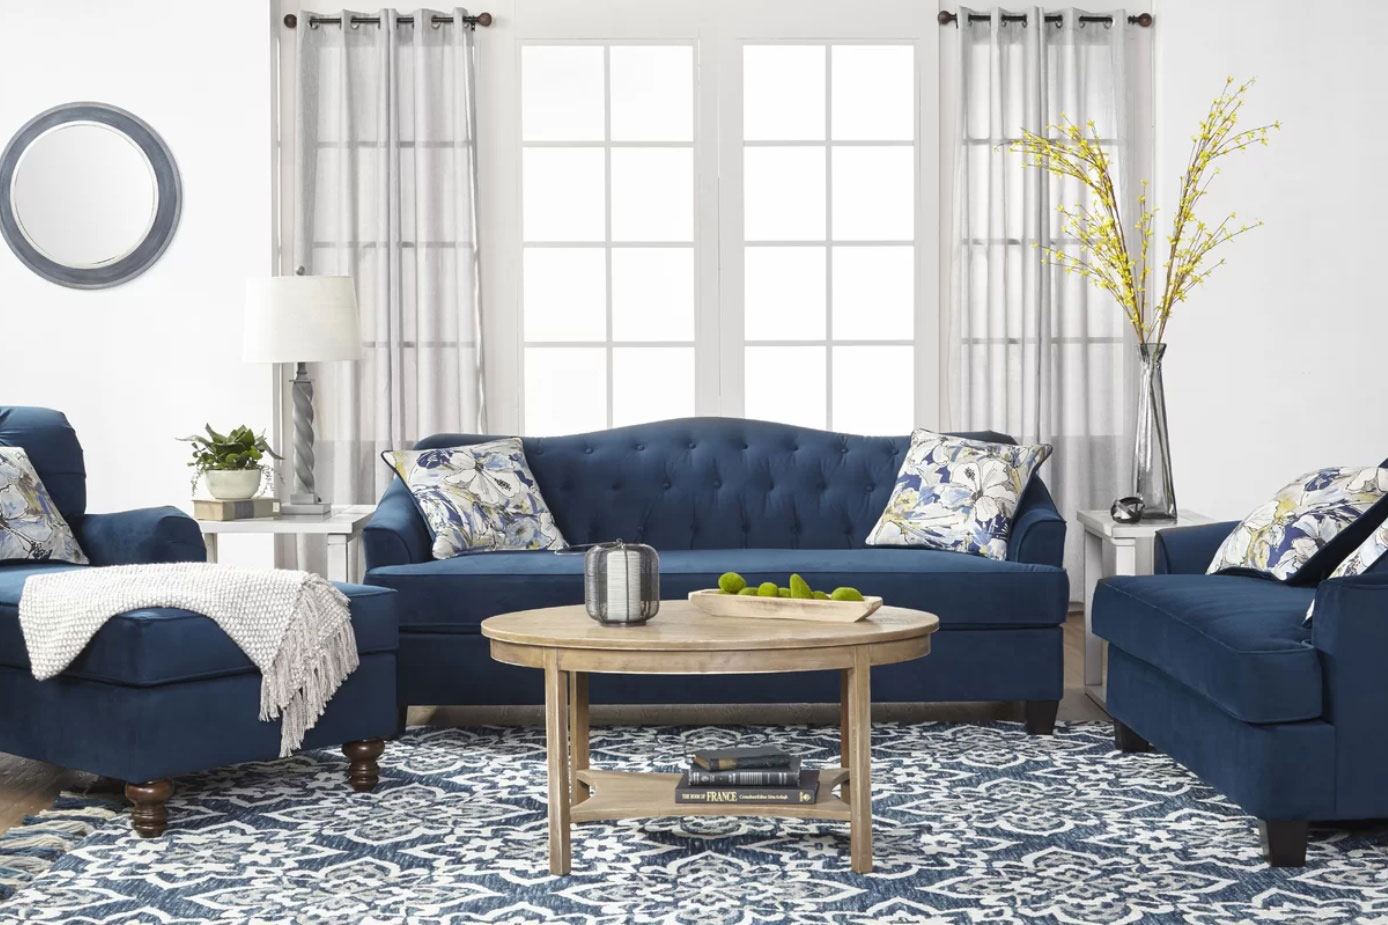 Black Friday deals: Navy living room set with couches and lounge chair.